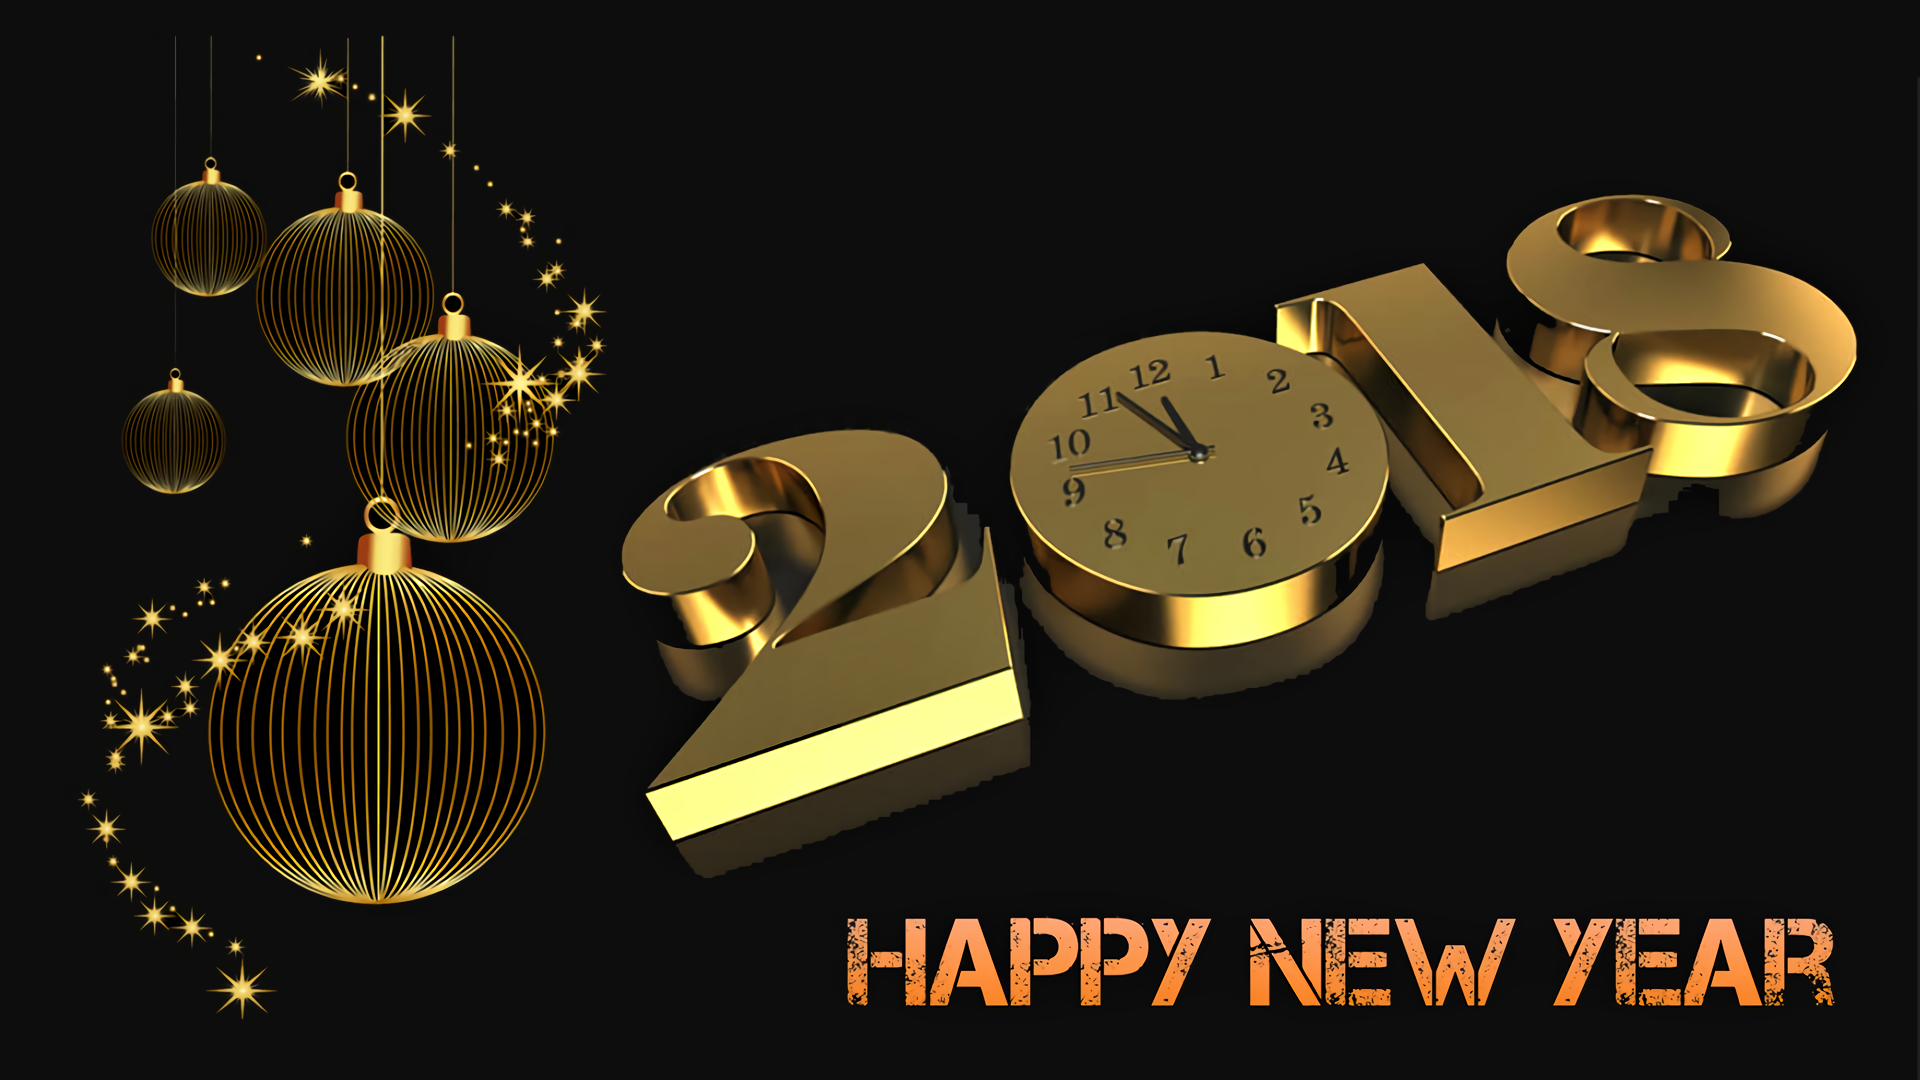 Hd Wallpaper Background Image Id X Holiday New Year